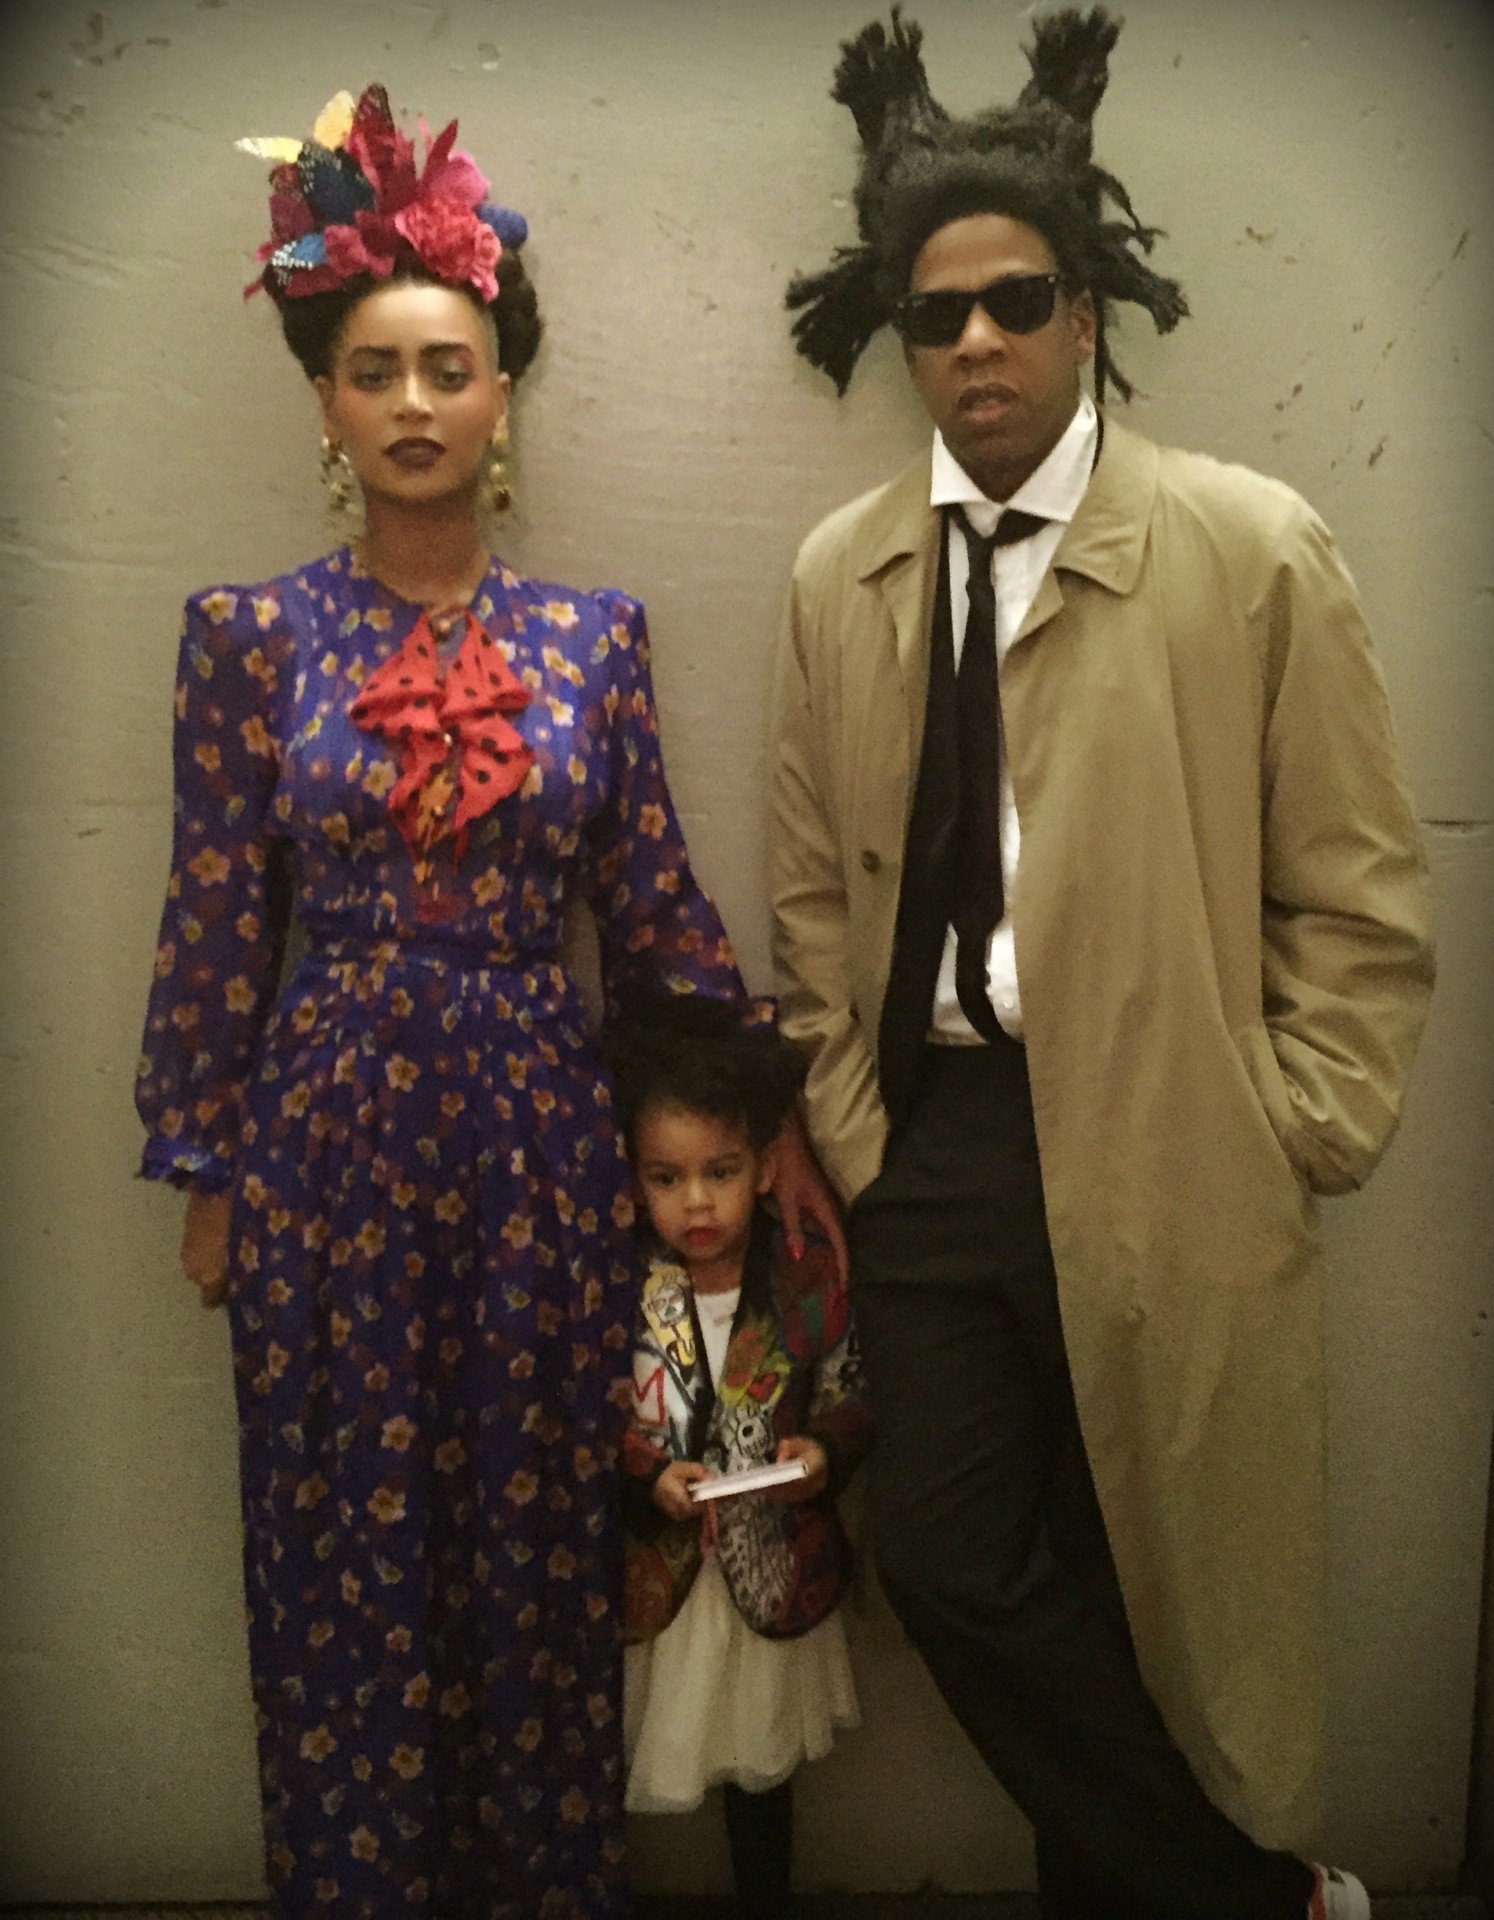 Beyonce dressed as Frida Kahlo and Jay Z dressed as Jean-Michel Basquiat with their daughter Blue Ivy at a Halloween party in 2014 Image via Bossip